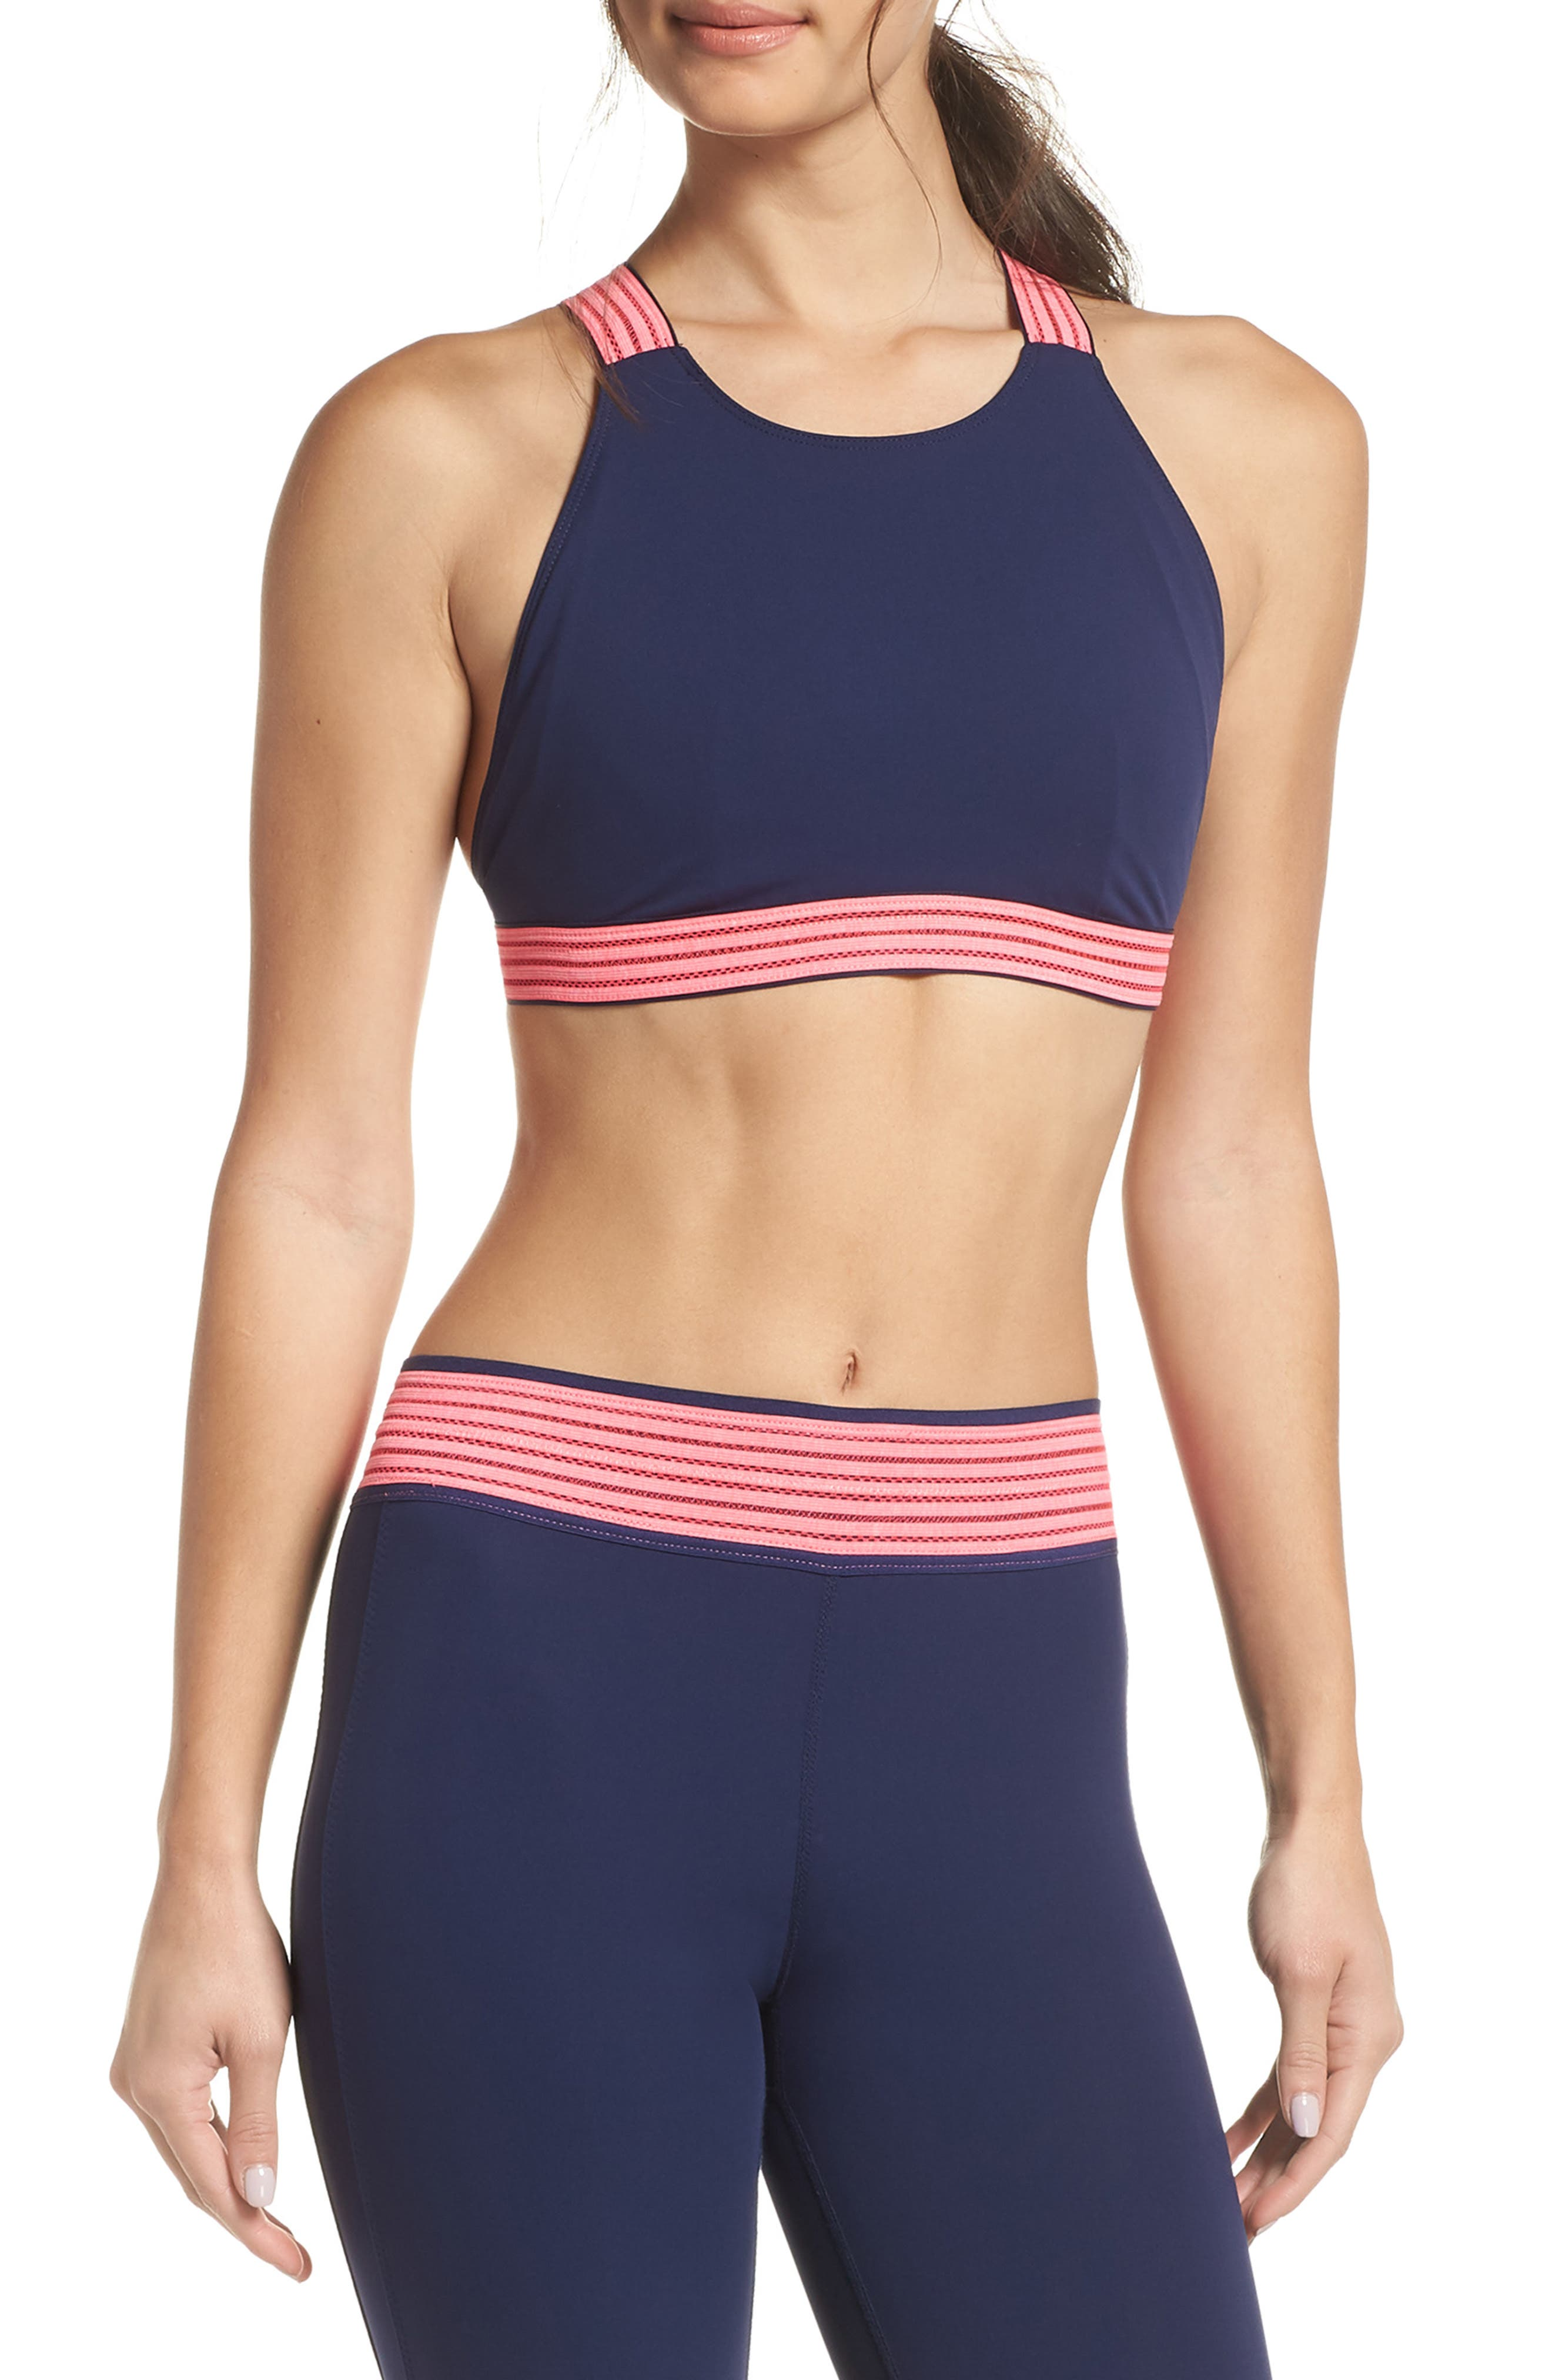 Free People Fp Movement Practice Makes Perfect Sports Bra